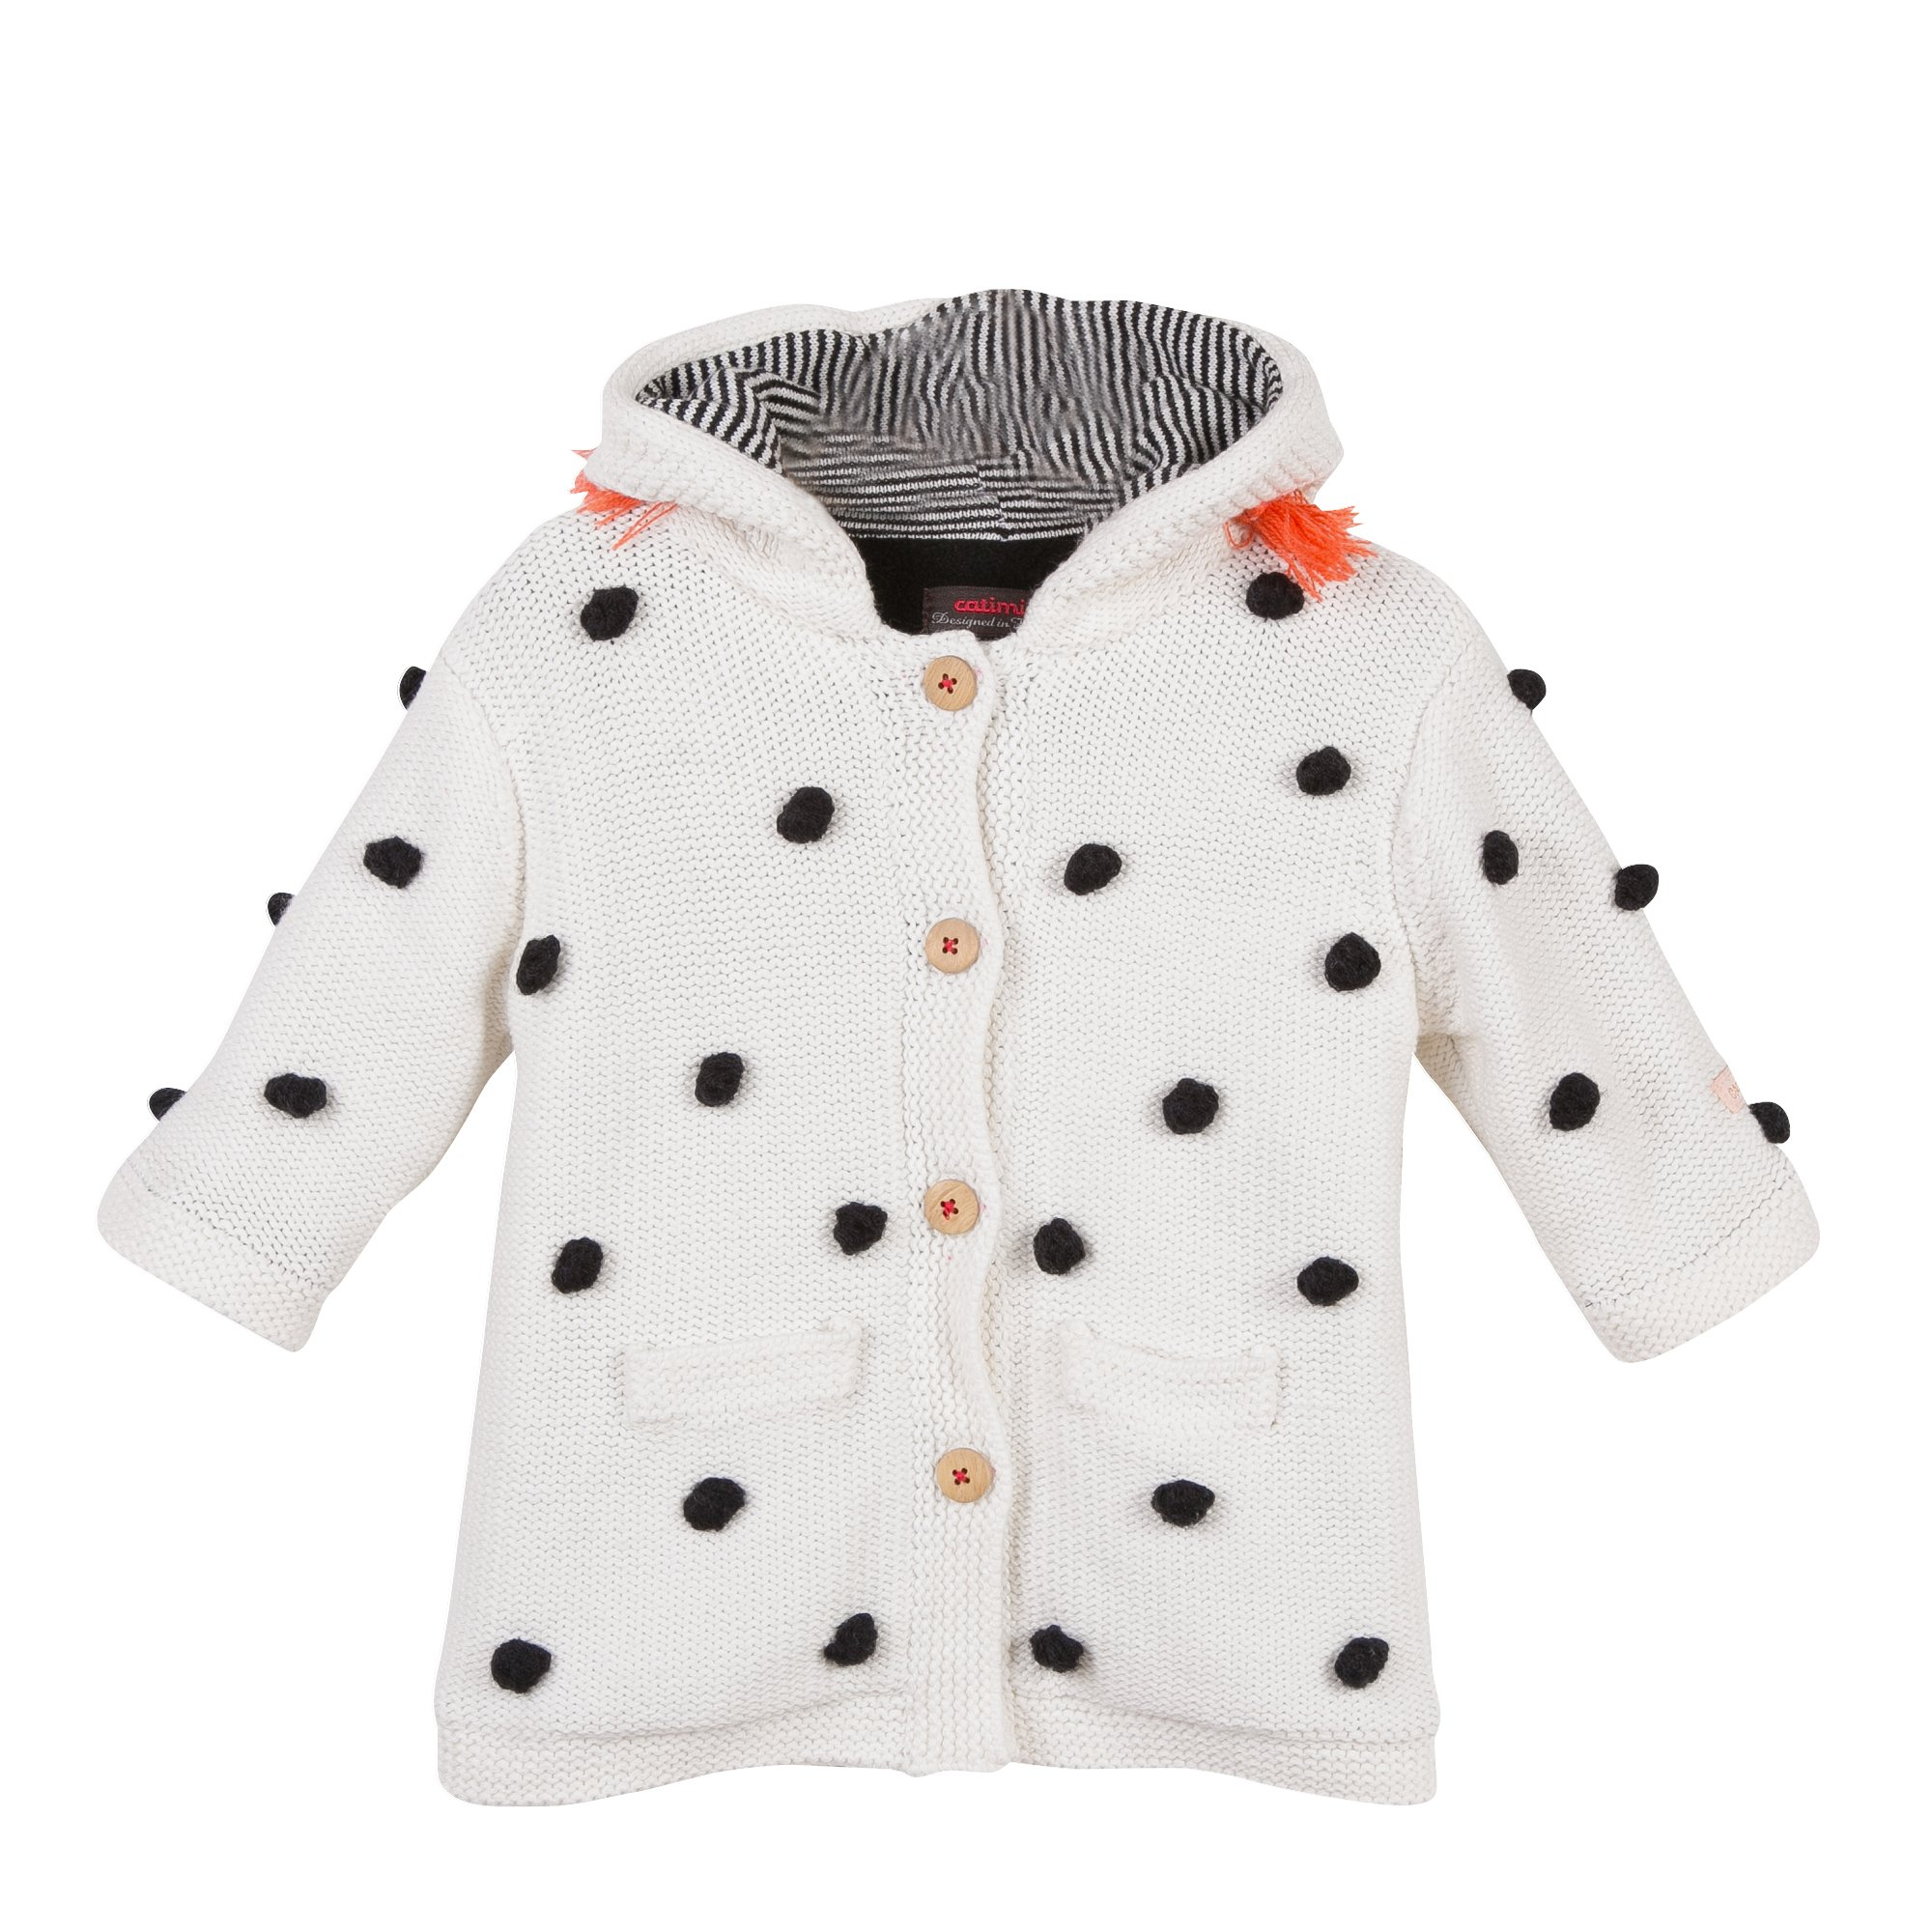 Catimini hooded pompom coat (9M) by Catimini (Image #1)